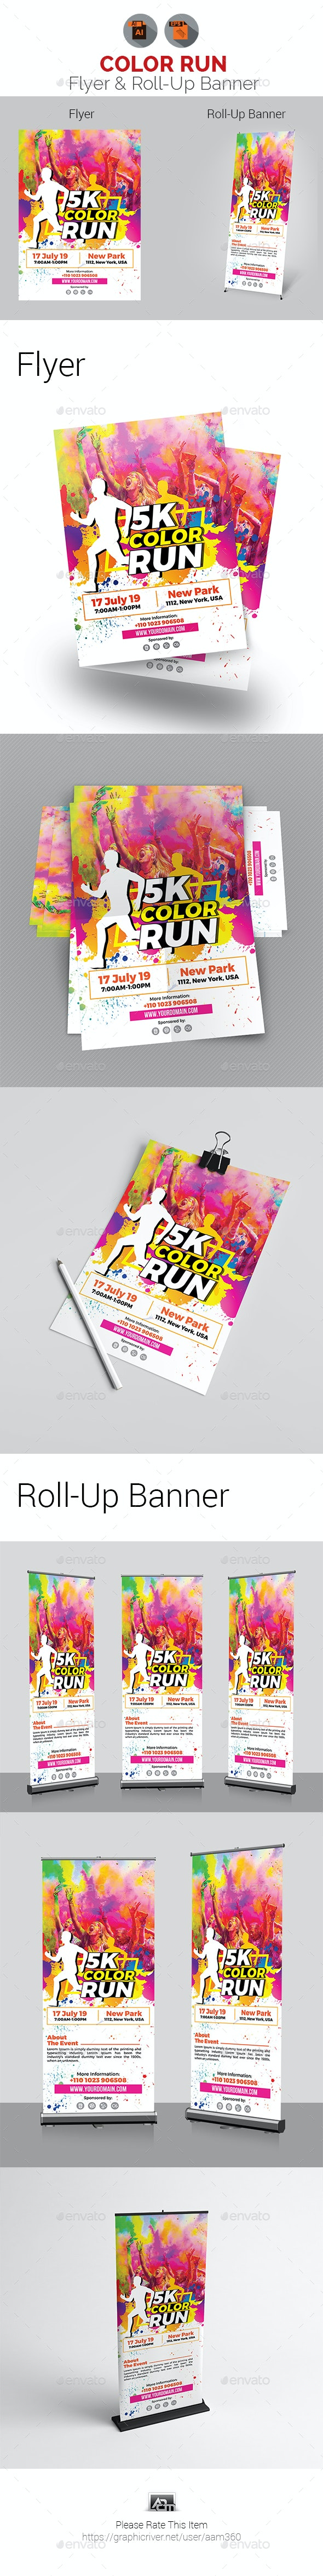 Color Run Event Flyer with Roll-Up Bundle - Sports Events